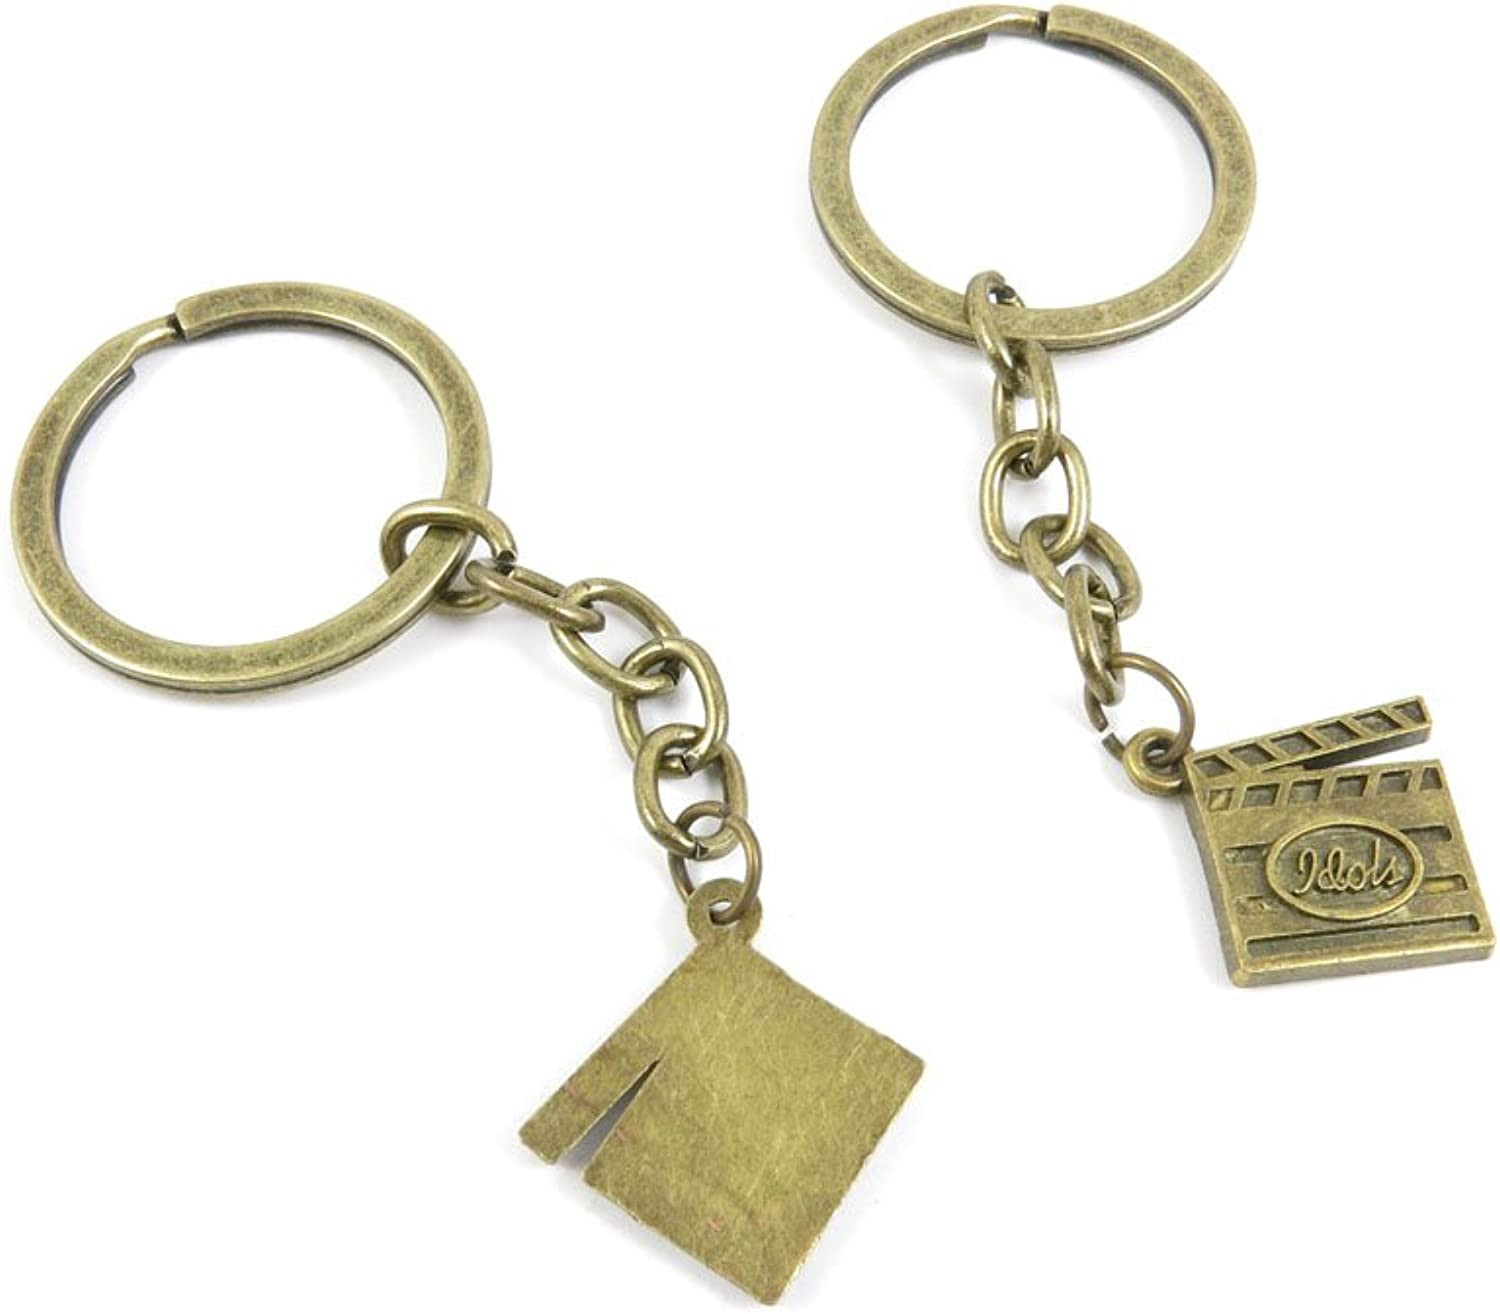 210 Pieces Fashion Jewelry Keyring Keychain Door Car Key Tag Ring Chain Supplier Supply Wholesale Bulk Lots H7AW6 Clap Slate Board